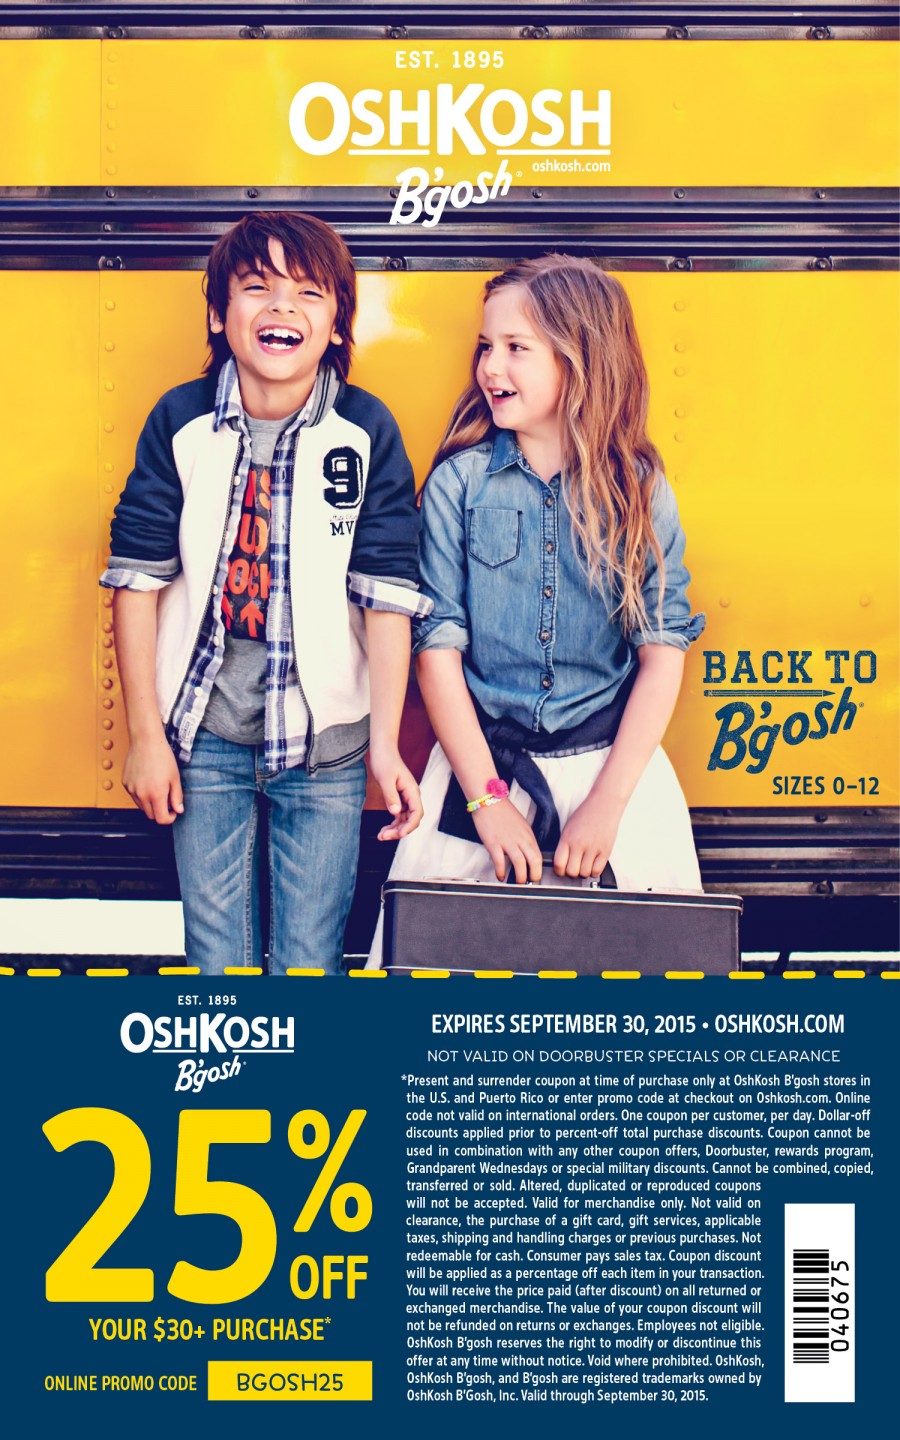 photograph relating to Oshkosh Printable Coupon identify Osh kosh 25 off coupon printable : Disney printable coupon codes